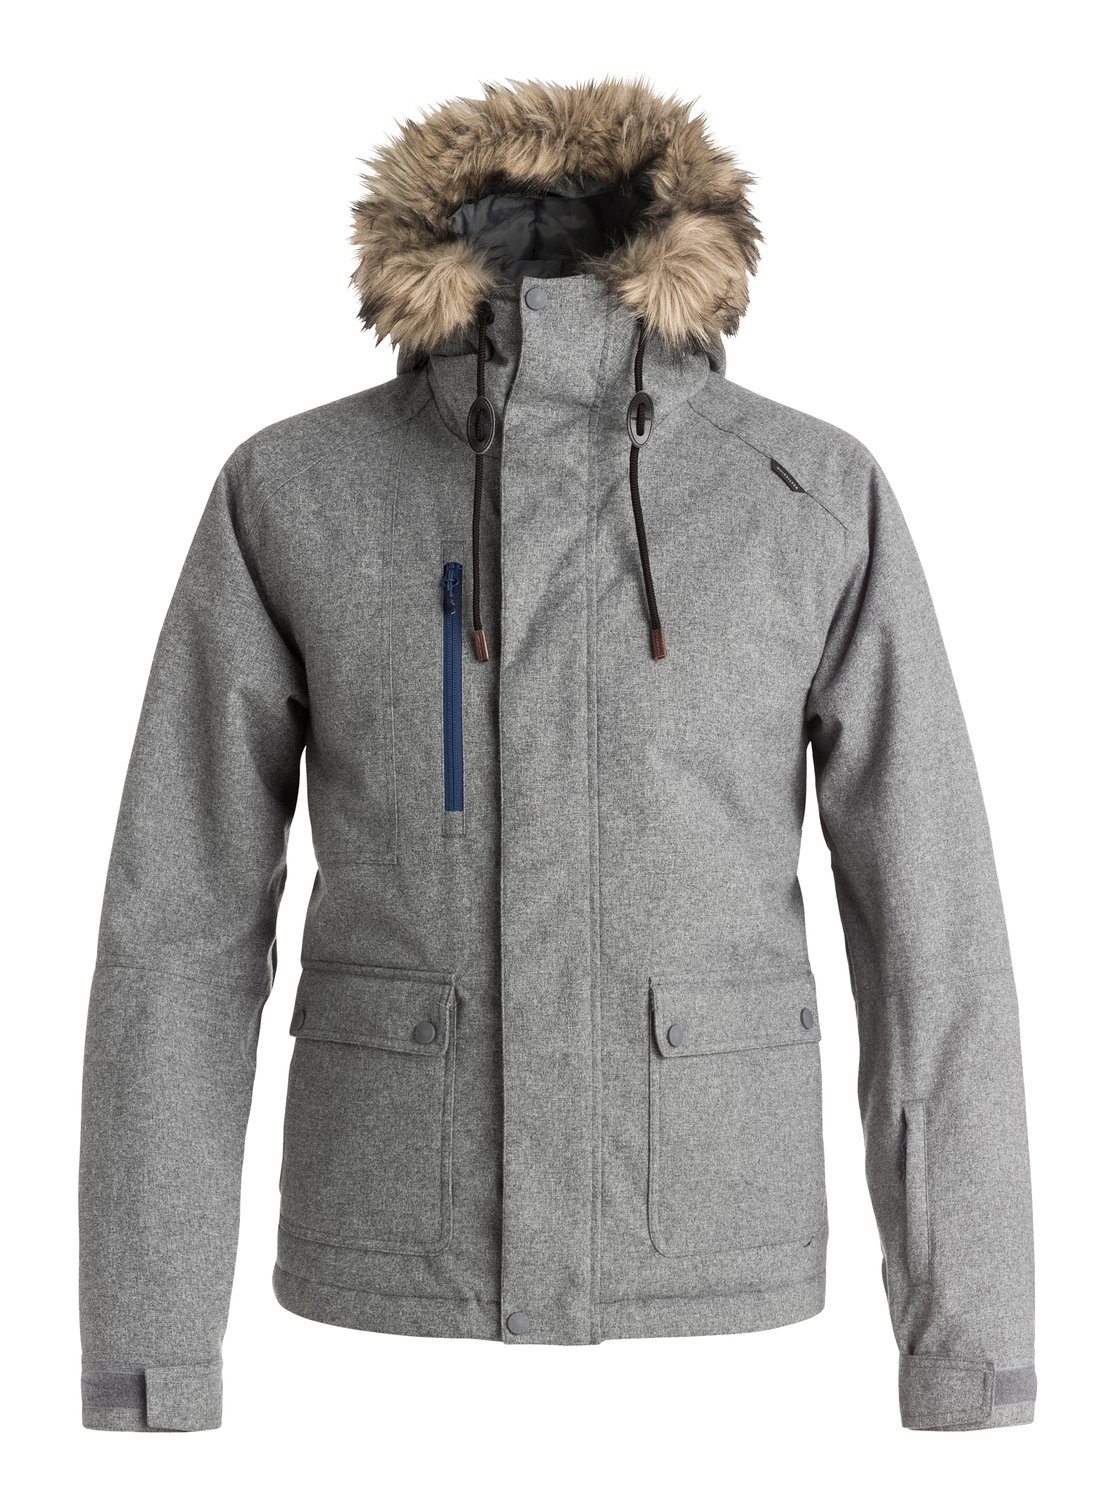 Сноубордическая куртка Selector PlusThe urban-influenced style of the parka-inspired Selector Plus snow jacket for men combines street looks with mountain performance. 10K Quiksilver DryFlight® technology for reliable waterproof and breathable protection, an easy-to-wear regular fit allows space to layer and Warmflight® insulation level 3 with a sherpa, chambray and lightweight, breathable taffeta lining to keep cosy on the coldest winter days.<br>